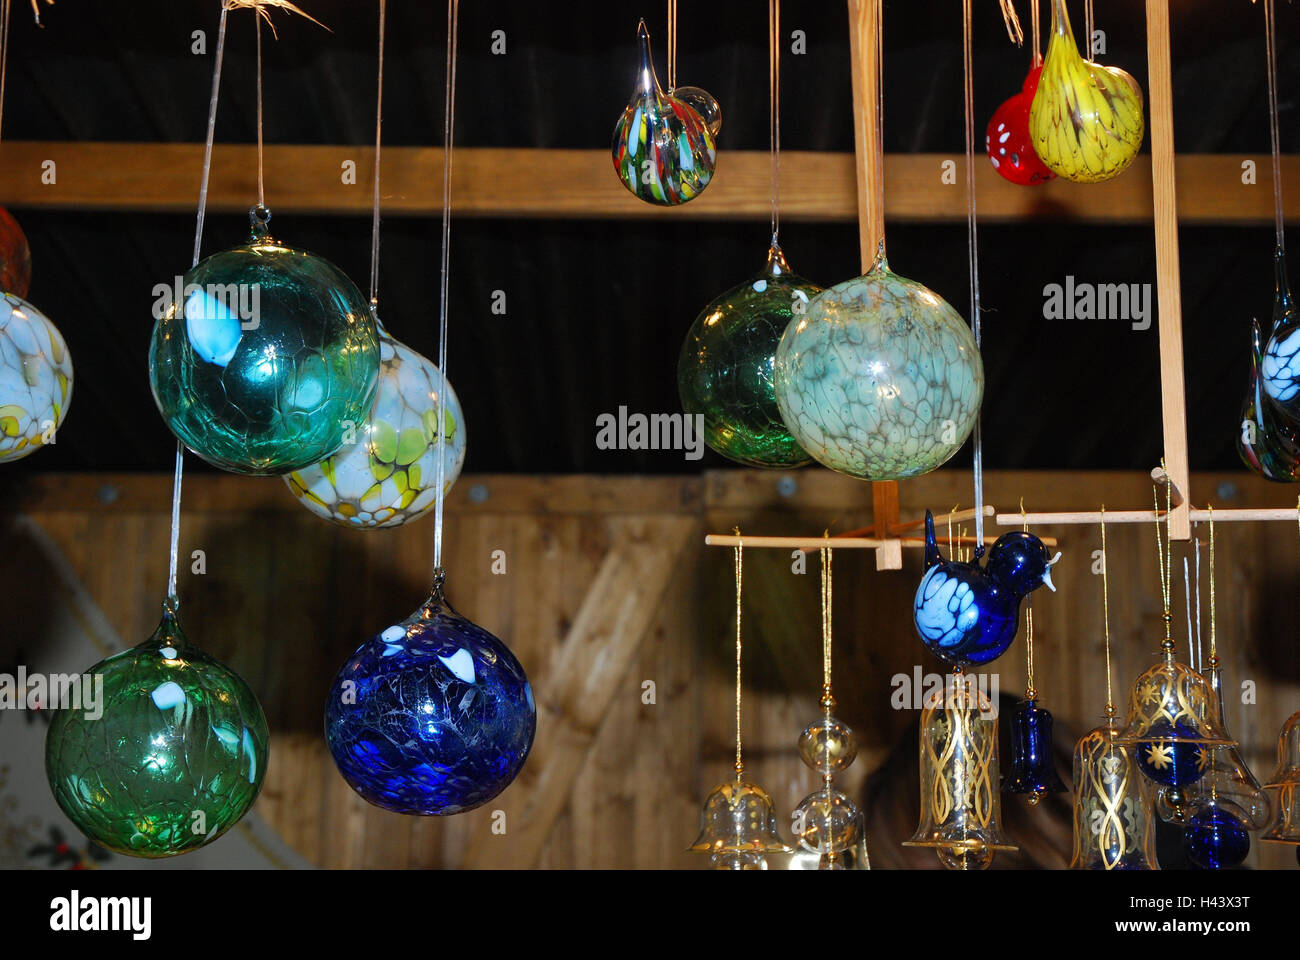 photo lighting decorations human of stand decor ulm ulmer illuminated en images lights sale city booths gothic night buden sales advent free cathedral church market light tree decoration seem christmas sea time crowd